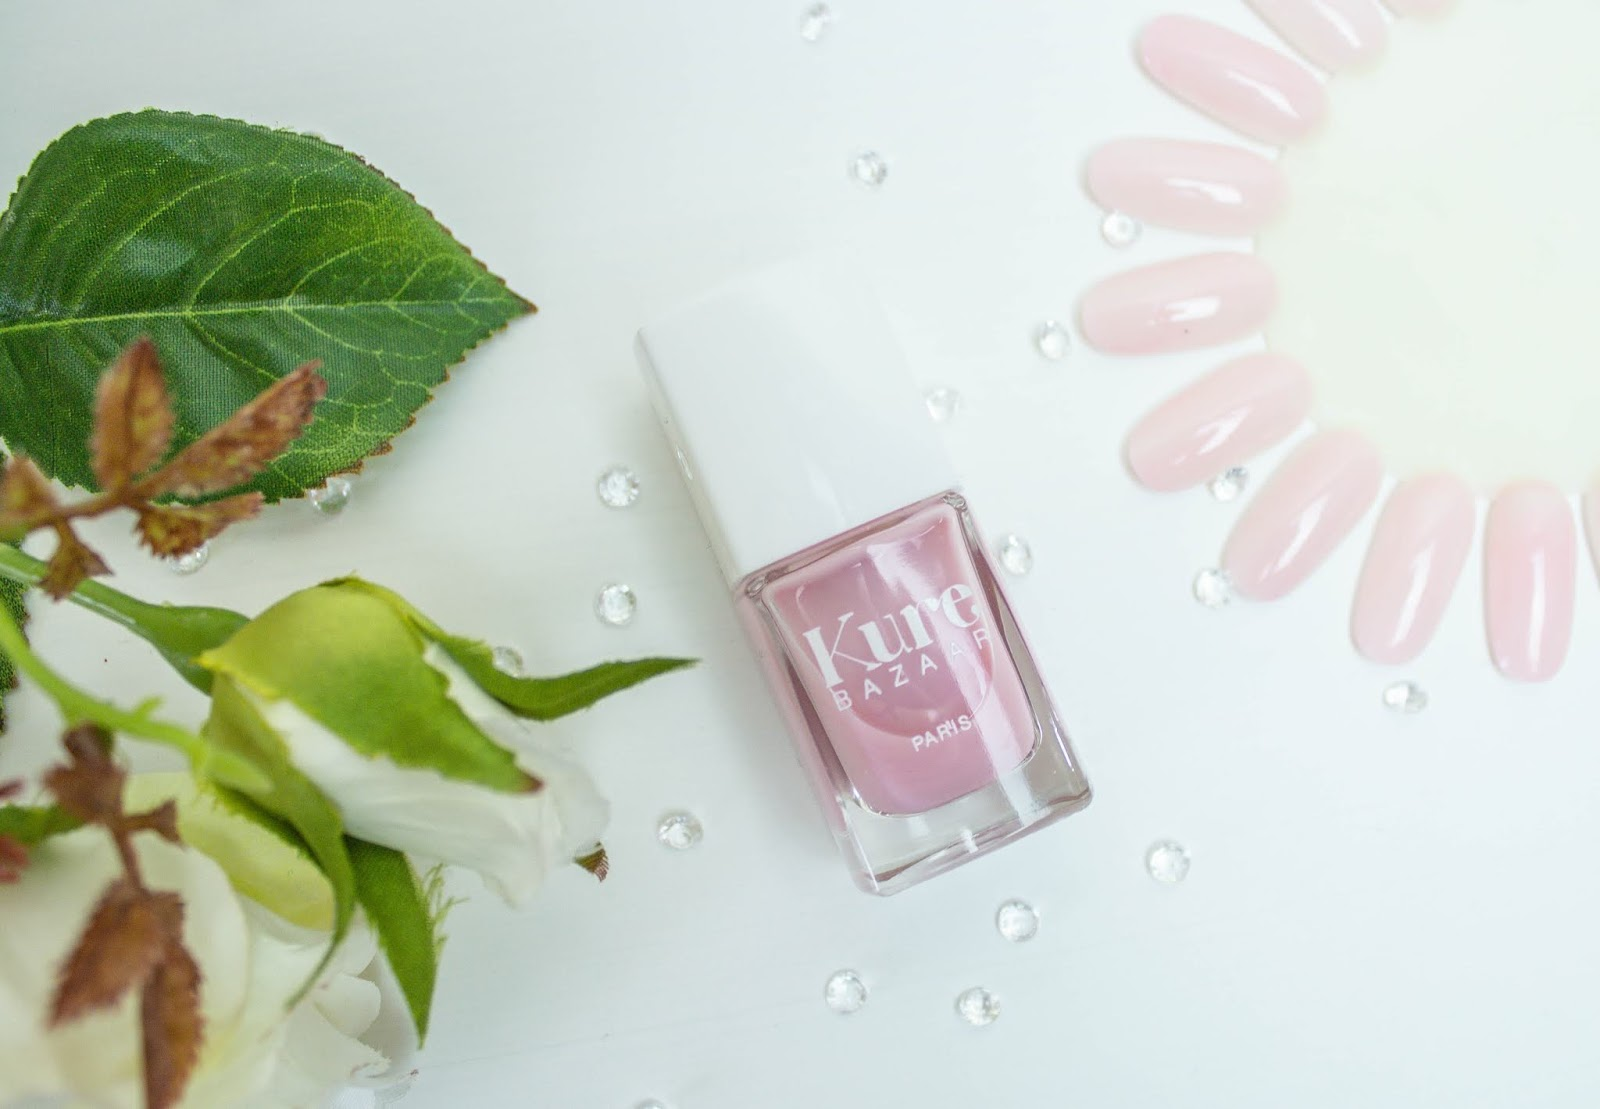 The Prettiest Summer Nail Varnish Colours from Kure Bazaar - French Rose Glow